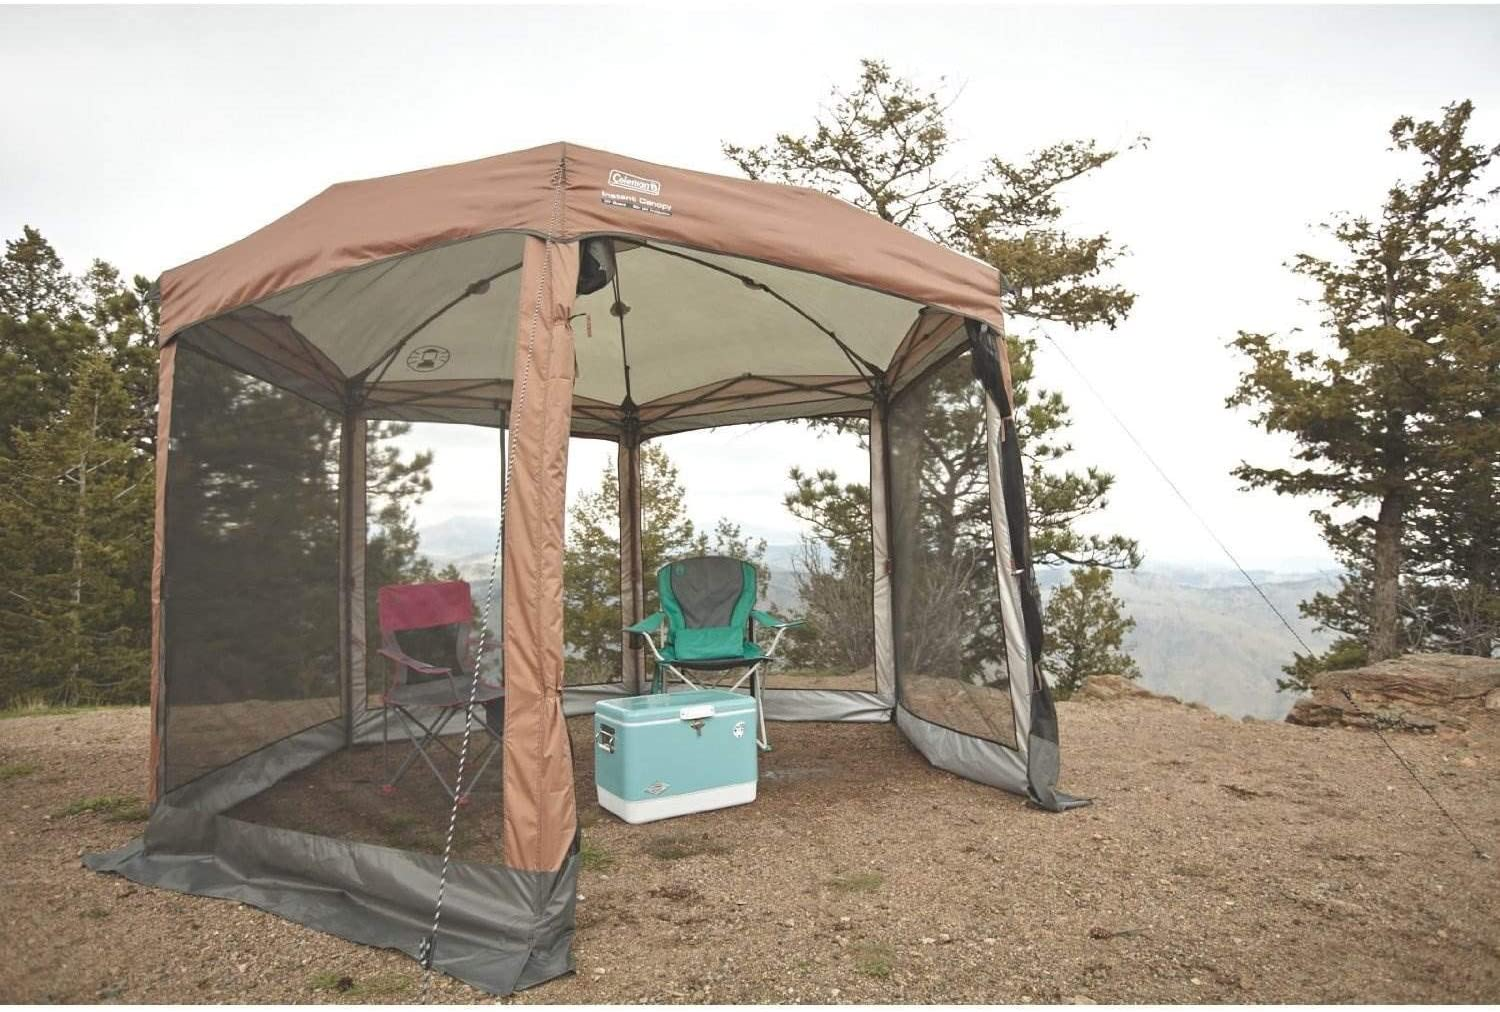 Coleman Screened Canopy Tent with Instant Setup | Back Home Screenhouse Sets Up in 60 Seconds 71ViHJi9biL